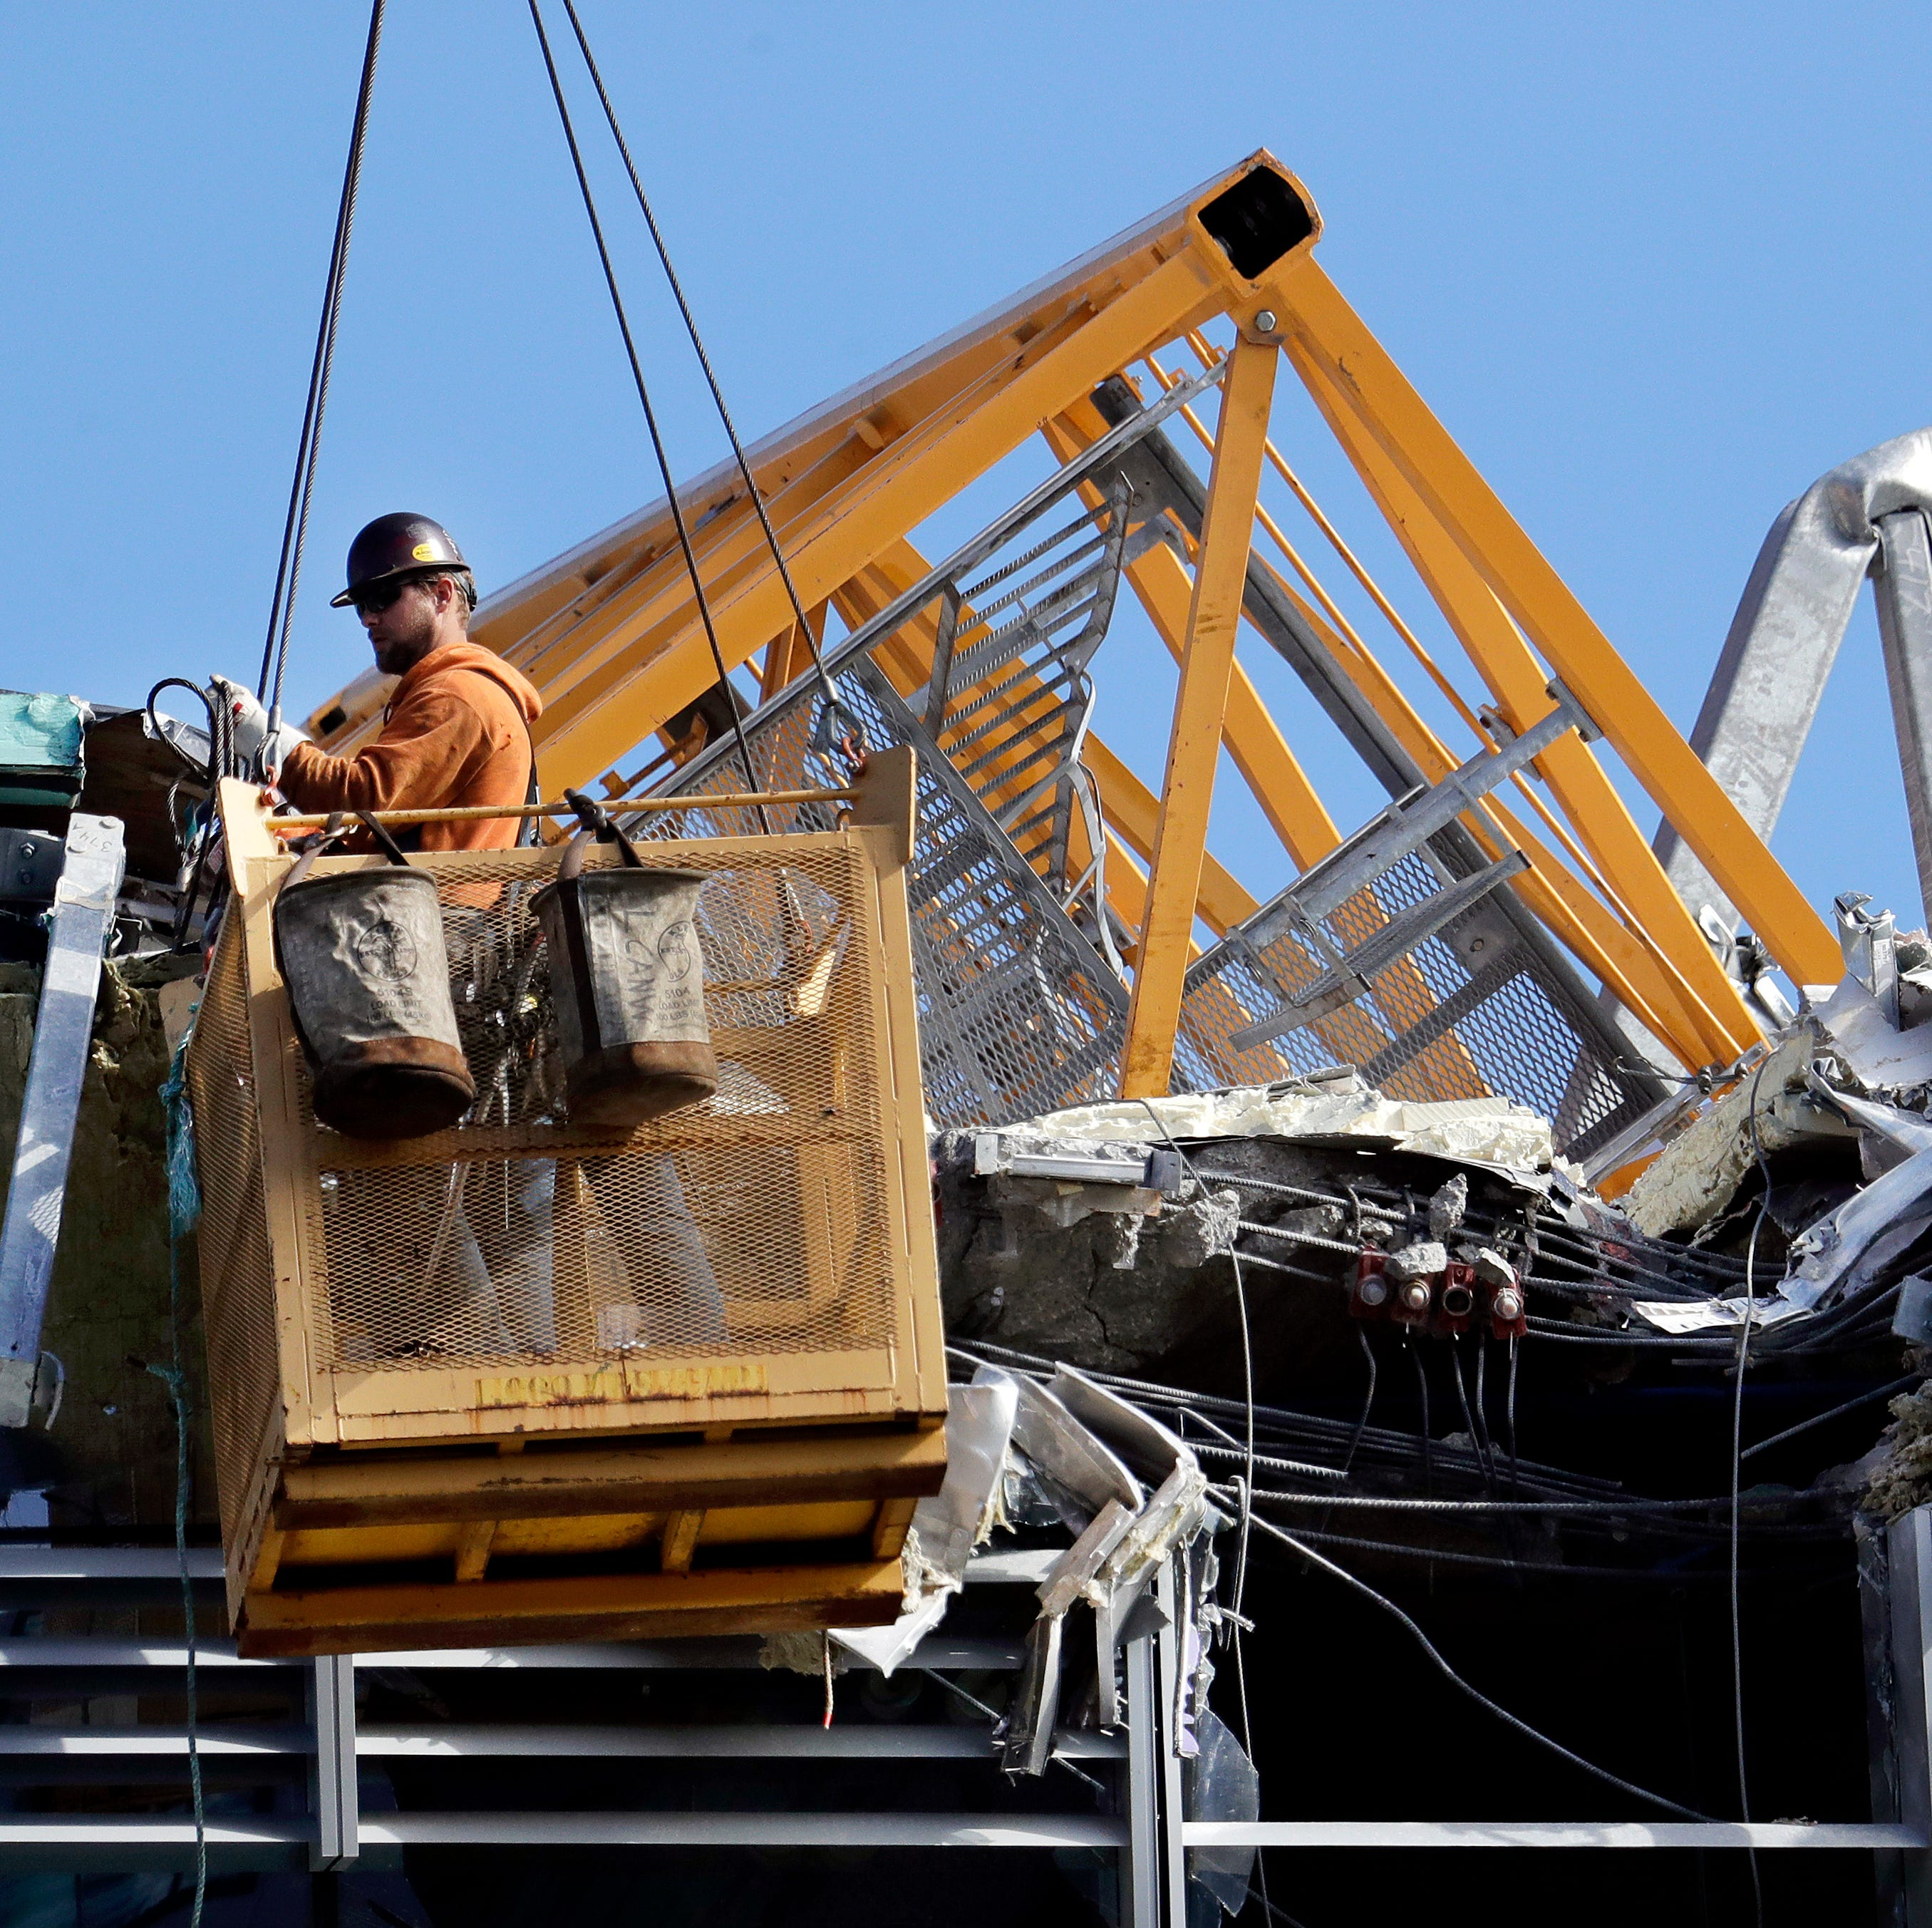 Experts: Human error may be cause of Seattle crane collapse